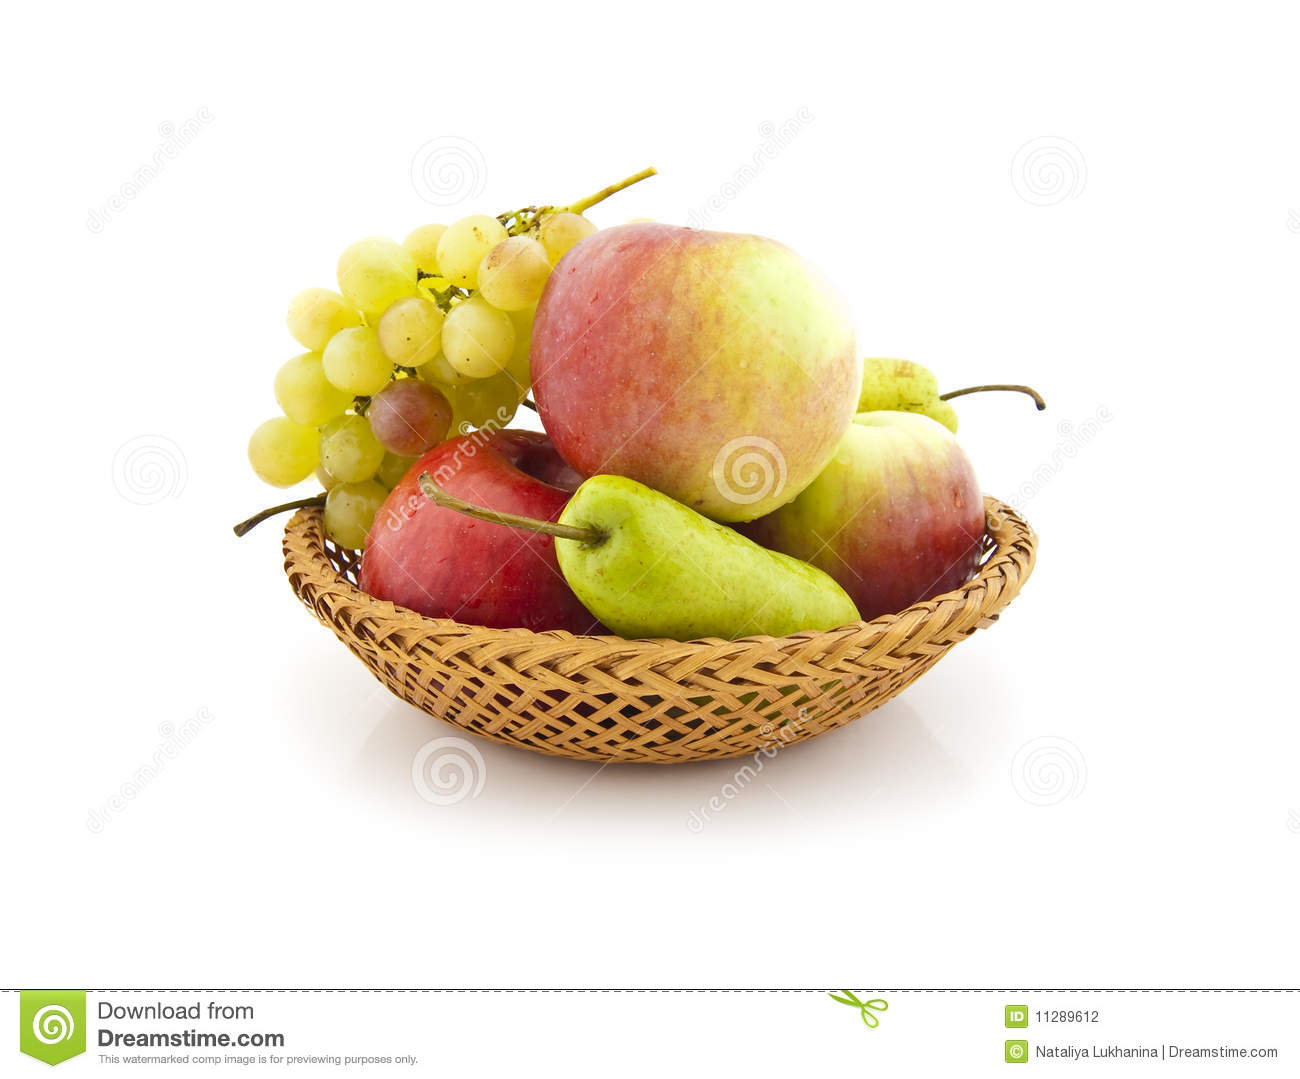 Apples, pears and grapes appetizing autumn fruit.